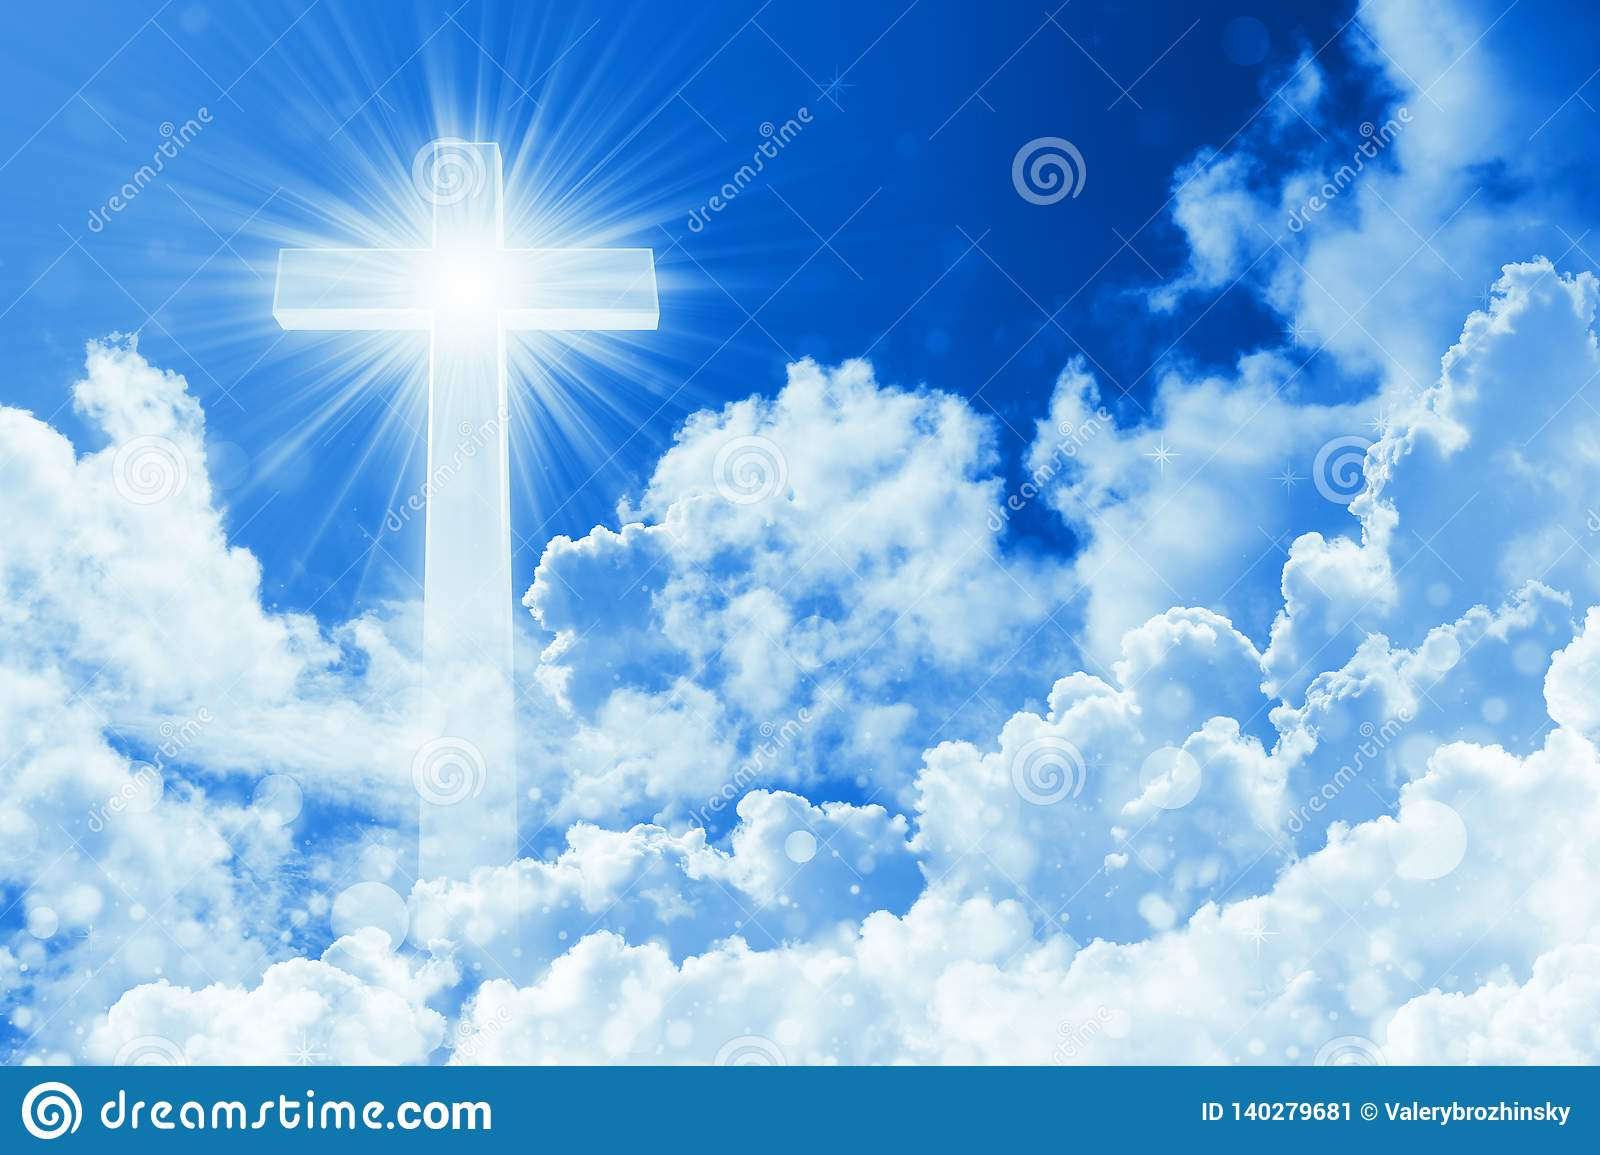 Concept of christian religion shining cross on the background of cloudy sky. Sky with cross and beautiful cloud. Divine shining